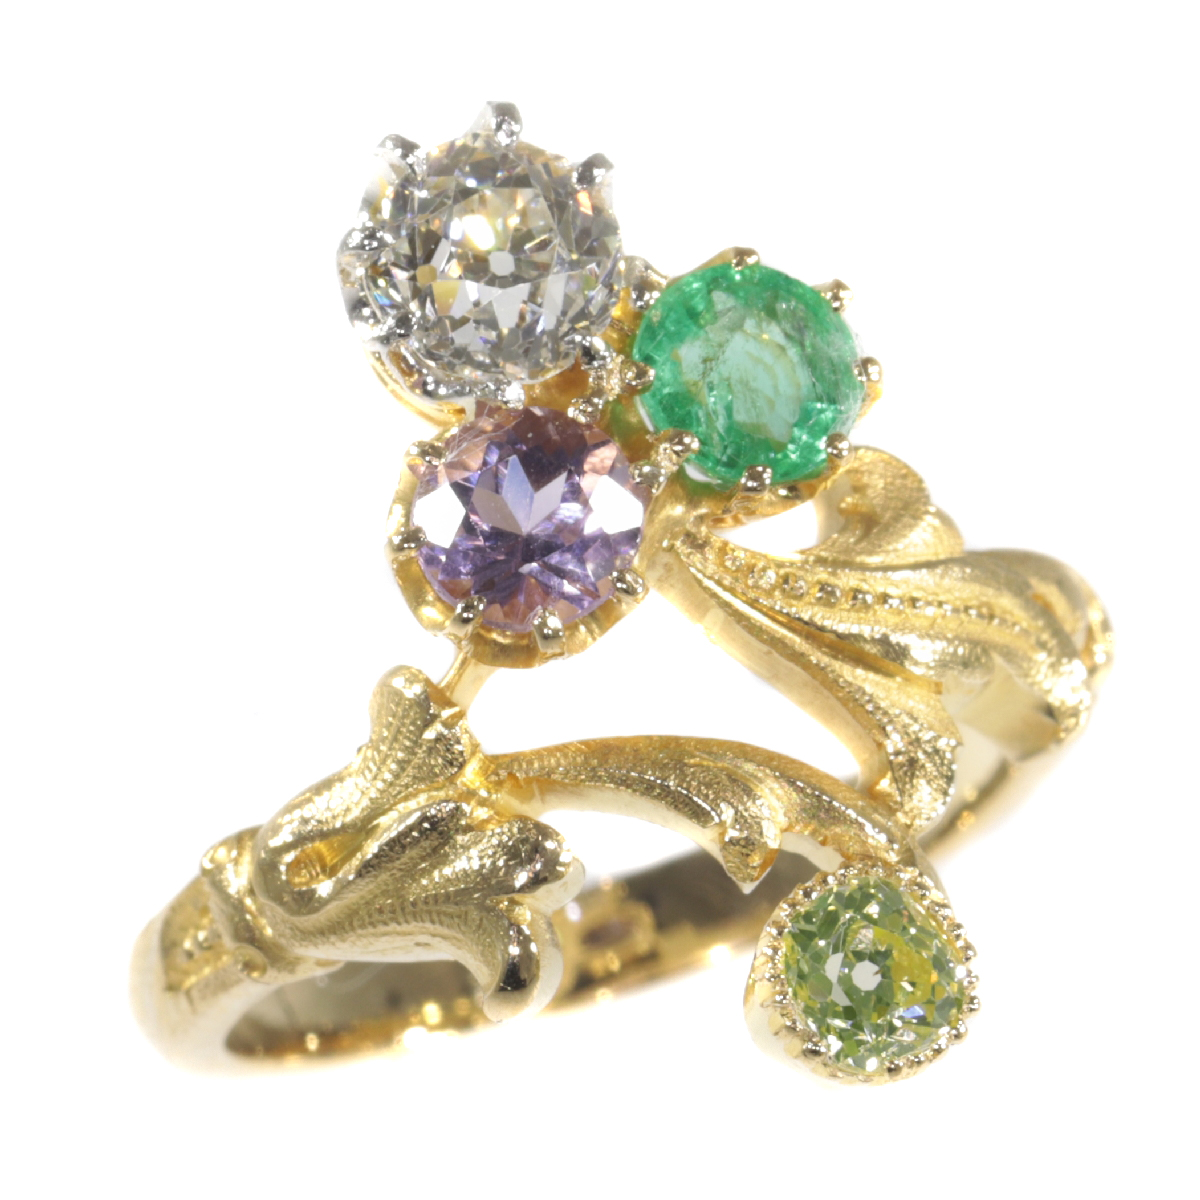 Antique ring typical so-called Suffragette diamond ring with precious stones